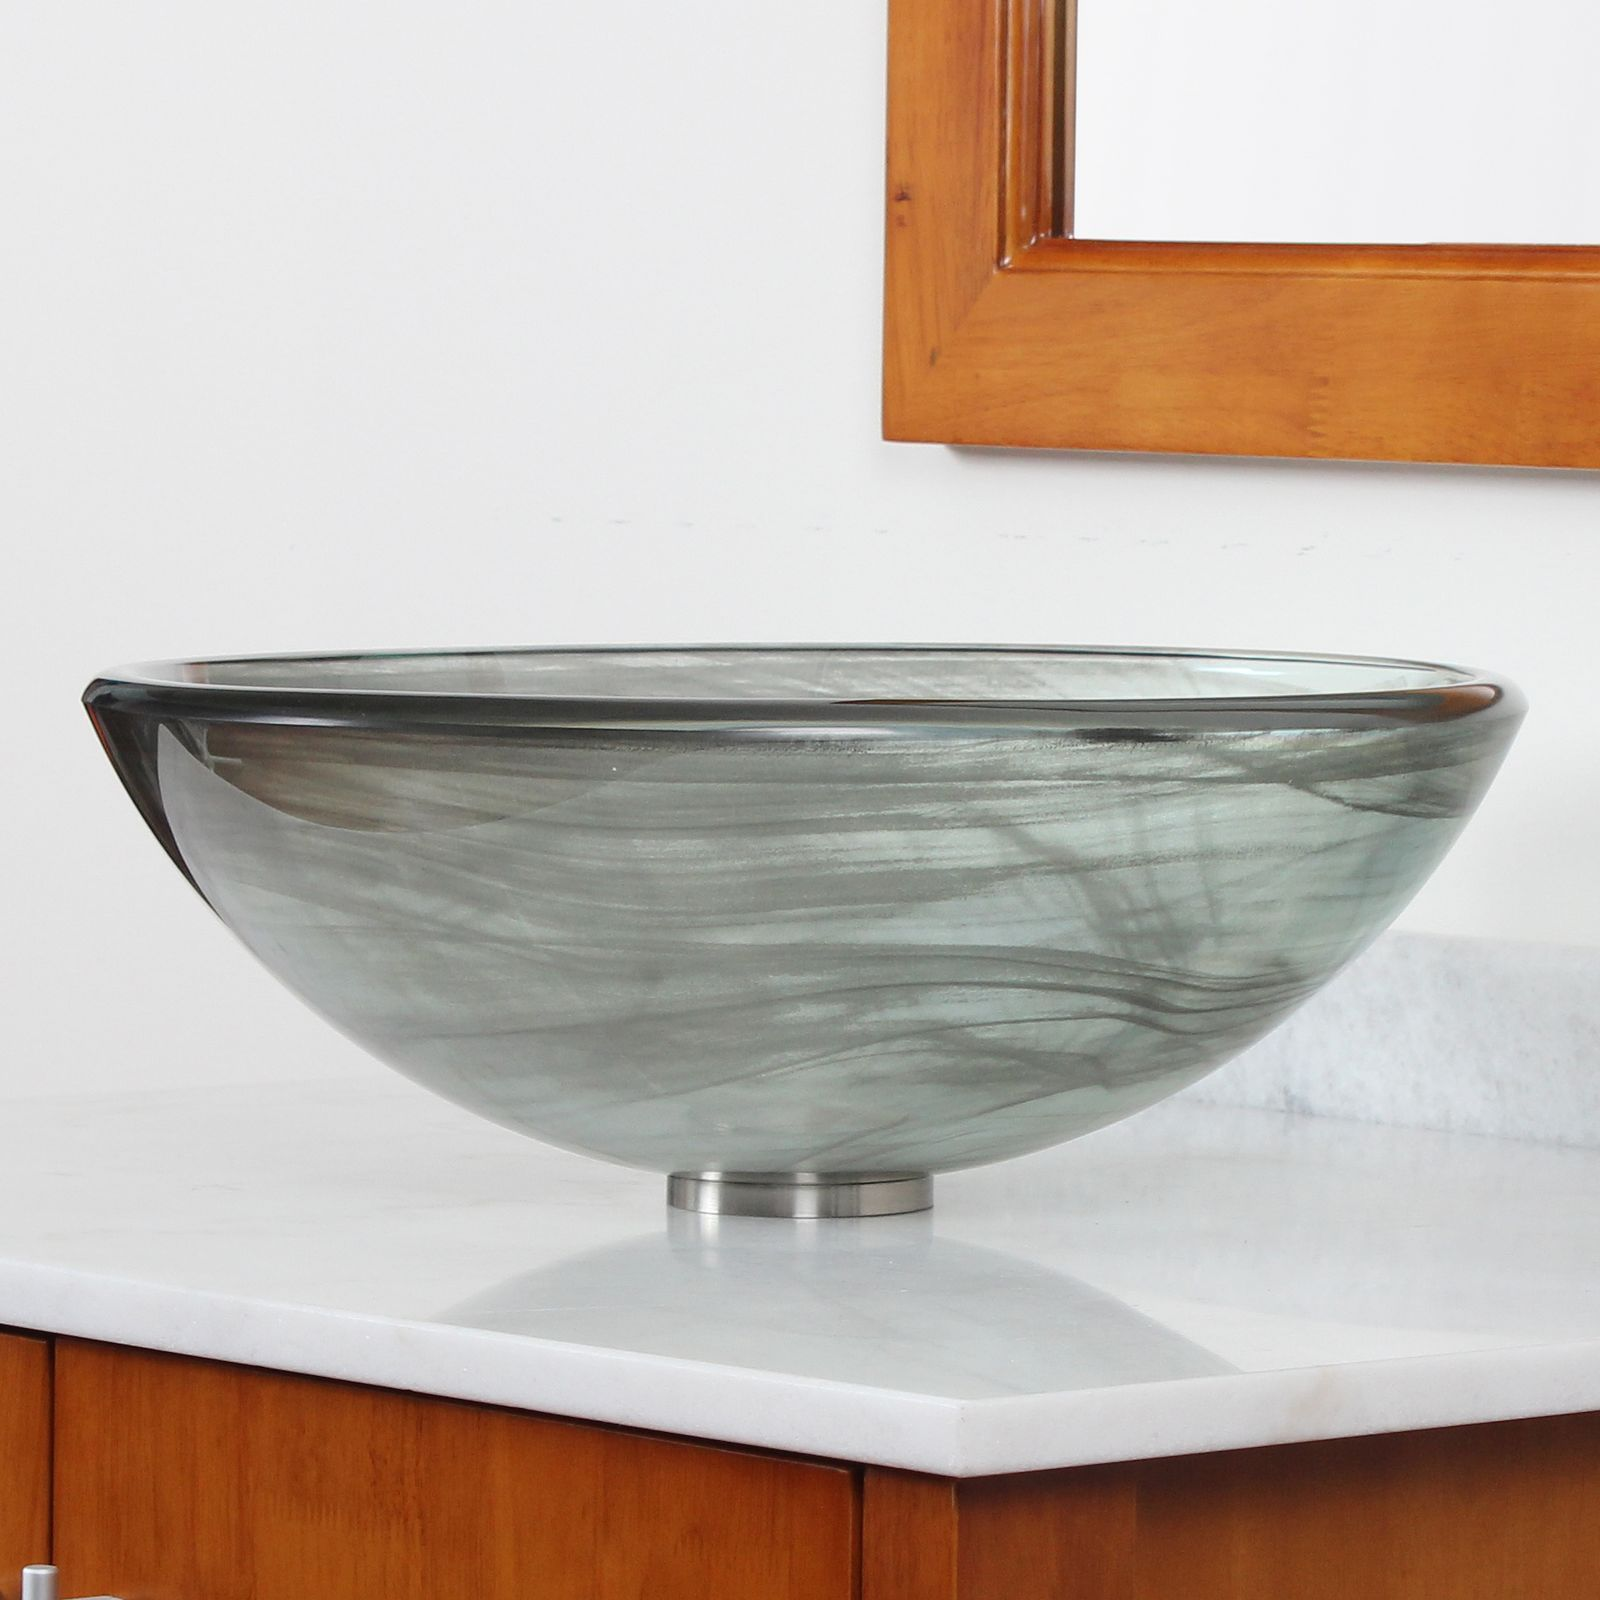 Shop Elite New Tempered Bathroom Black Swirl Glass Vessel Sink With ...